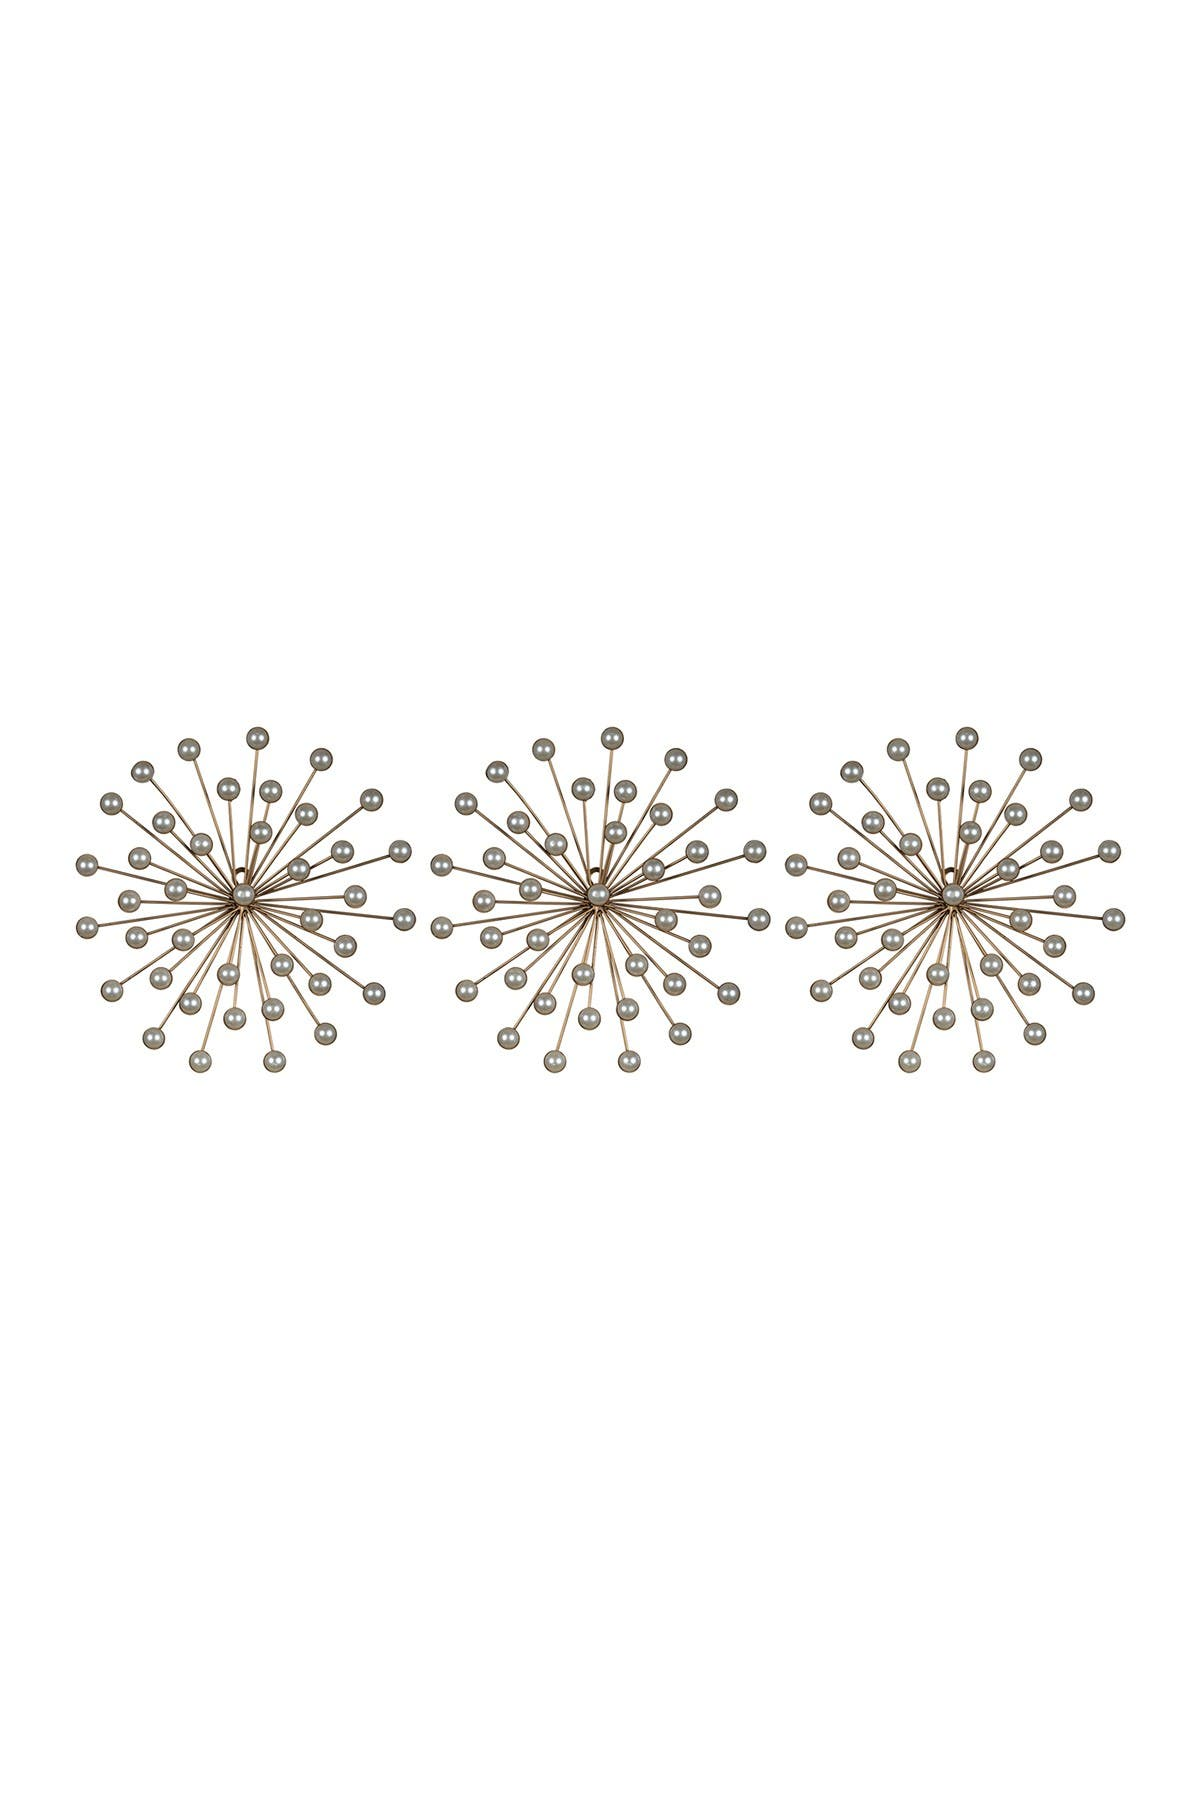 Image of Stratton Home Decor Pearl Bursts Wall Decor - Set of 3